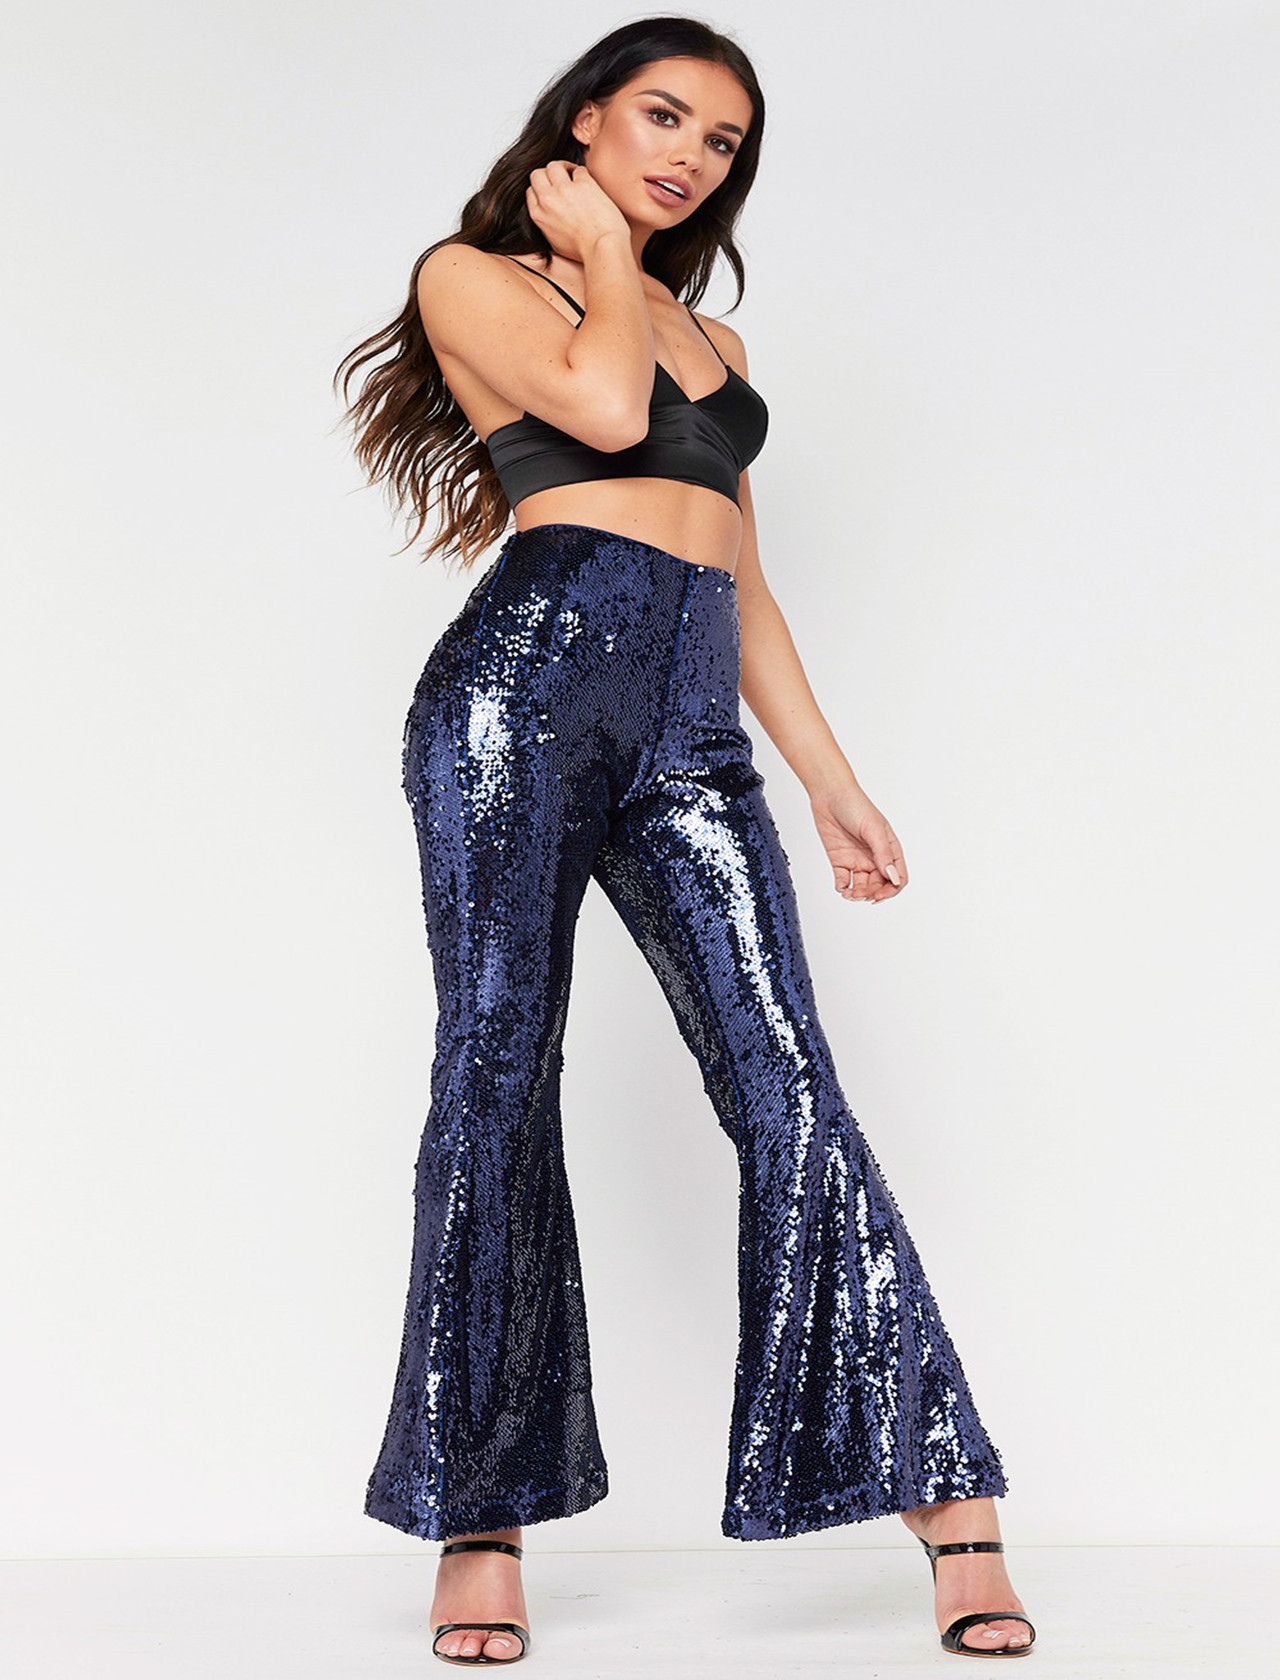 da21a9ebbcaa16 Sexy Club Women Multi Color Sequin Flared Trousers High waist Vintage Wide  Leg Shinny Pants Women Bell Bottom Leggings-in Pants & Capris from Women's  ...